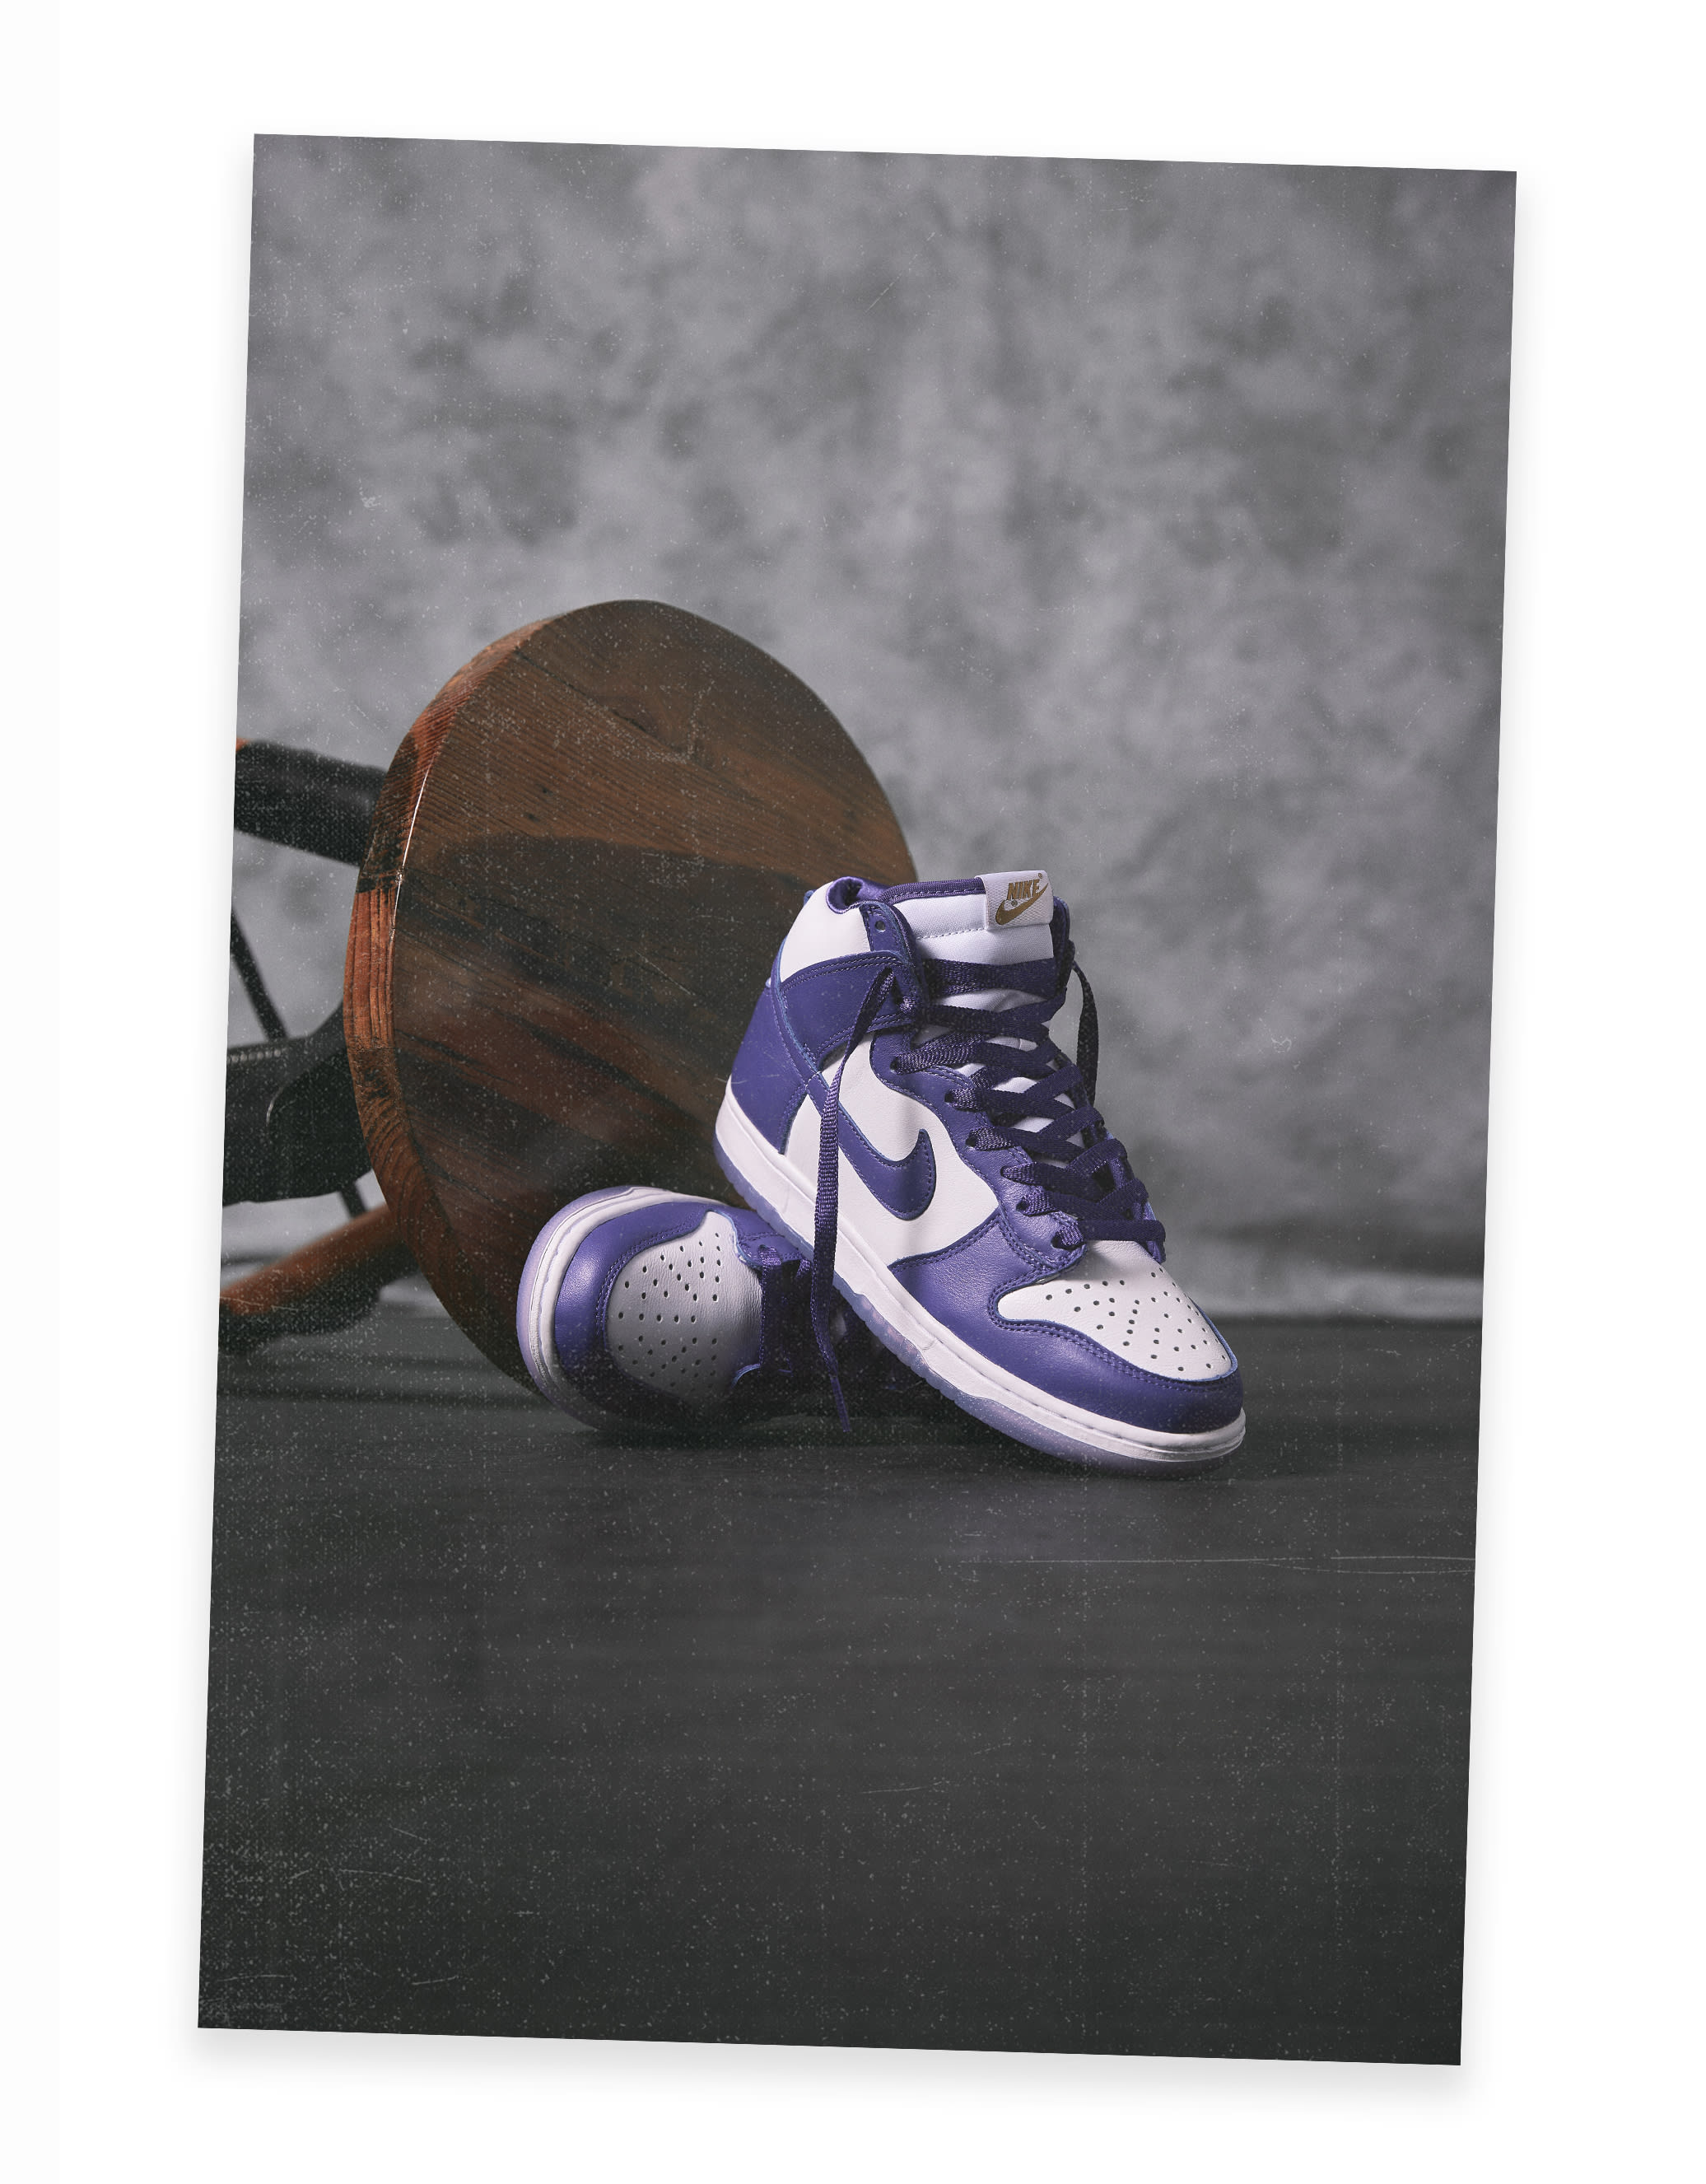 Class of 2020 Year of the Dunk - Nike Dunk High SP Varsity Purple